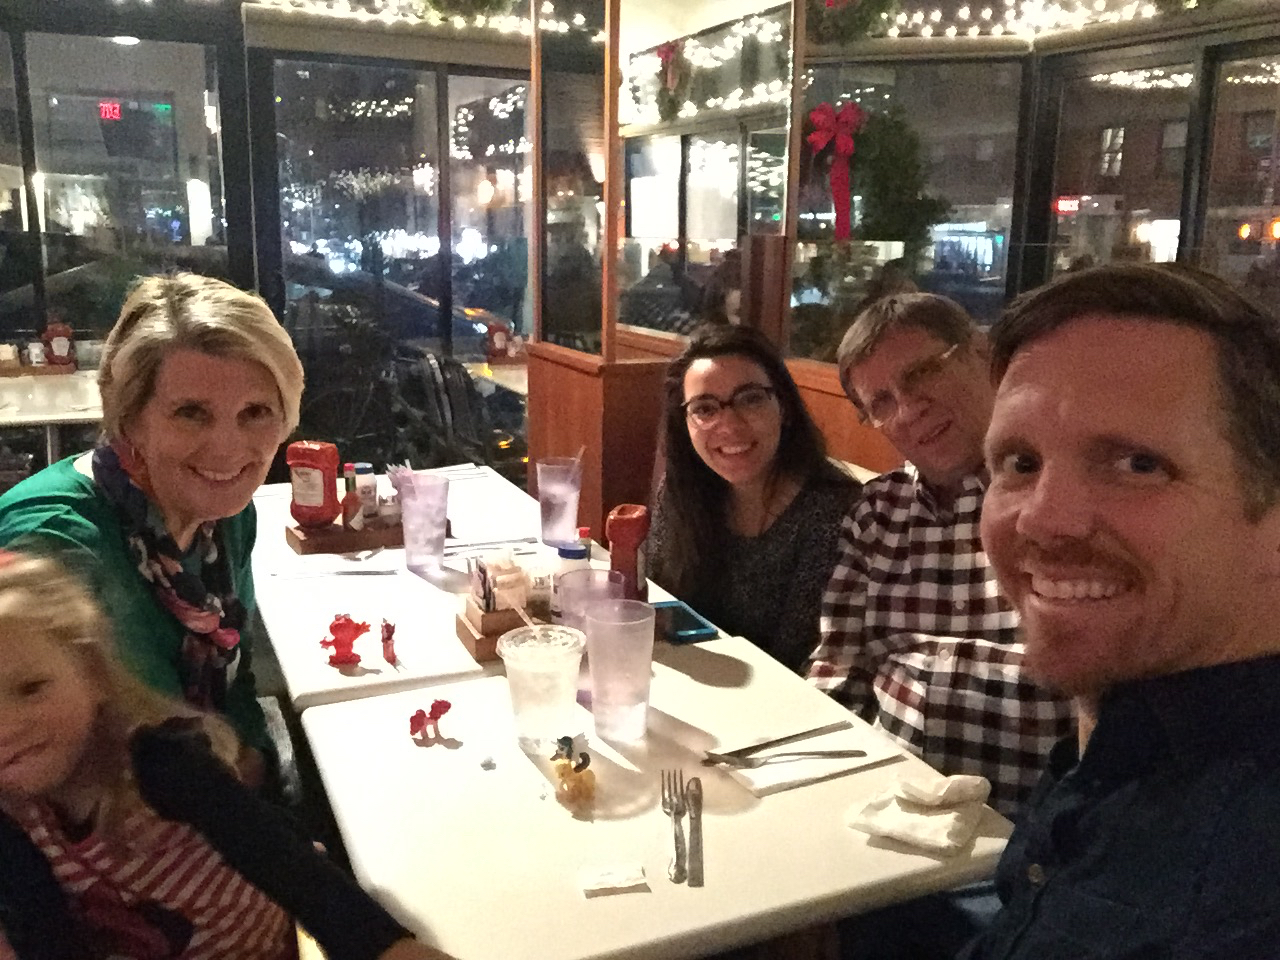 Came back and had breakfast for dinner at Midnight Diner, one of Rob's favorite places for pancakes.